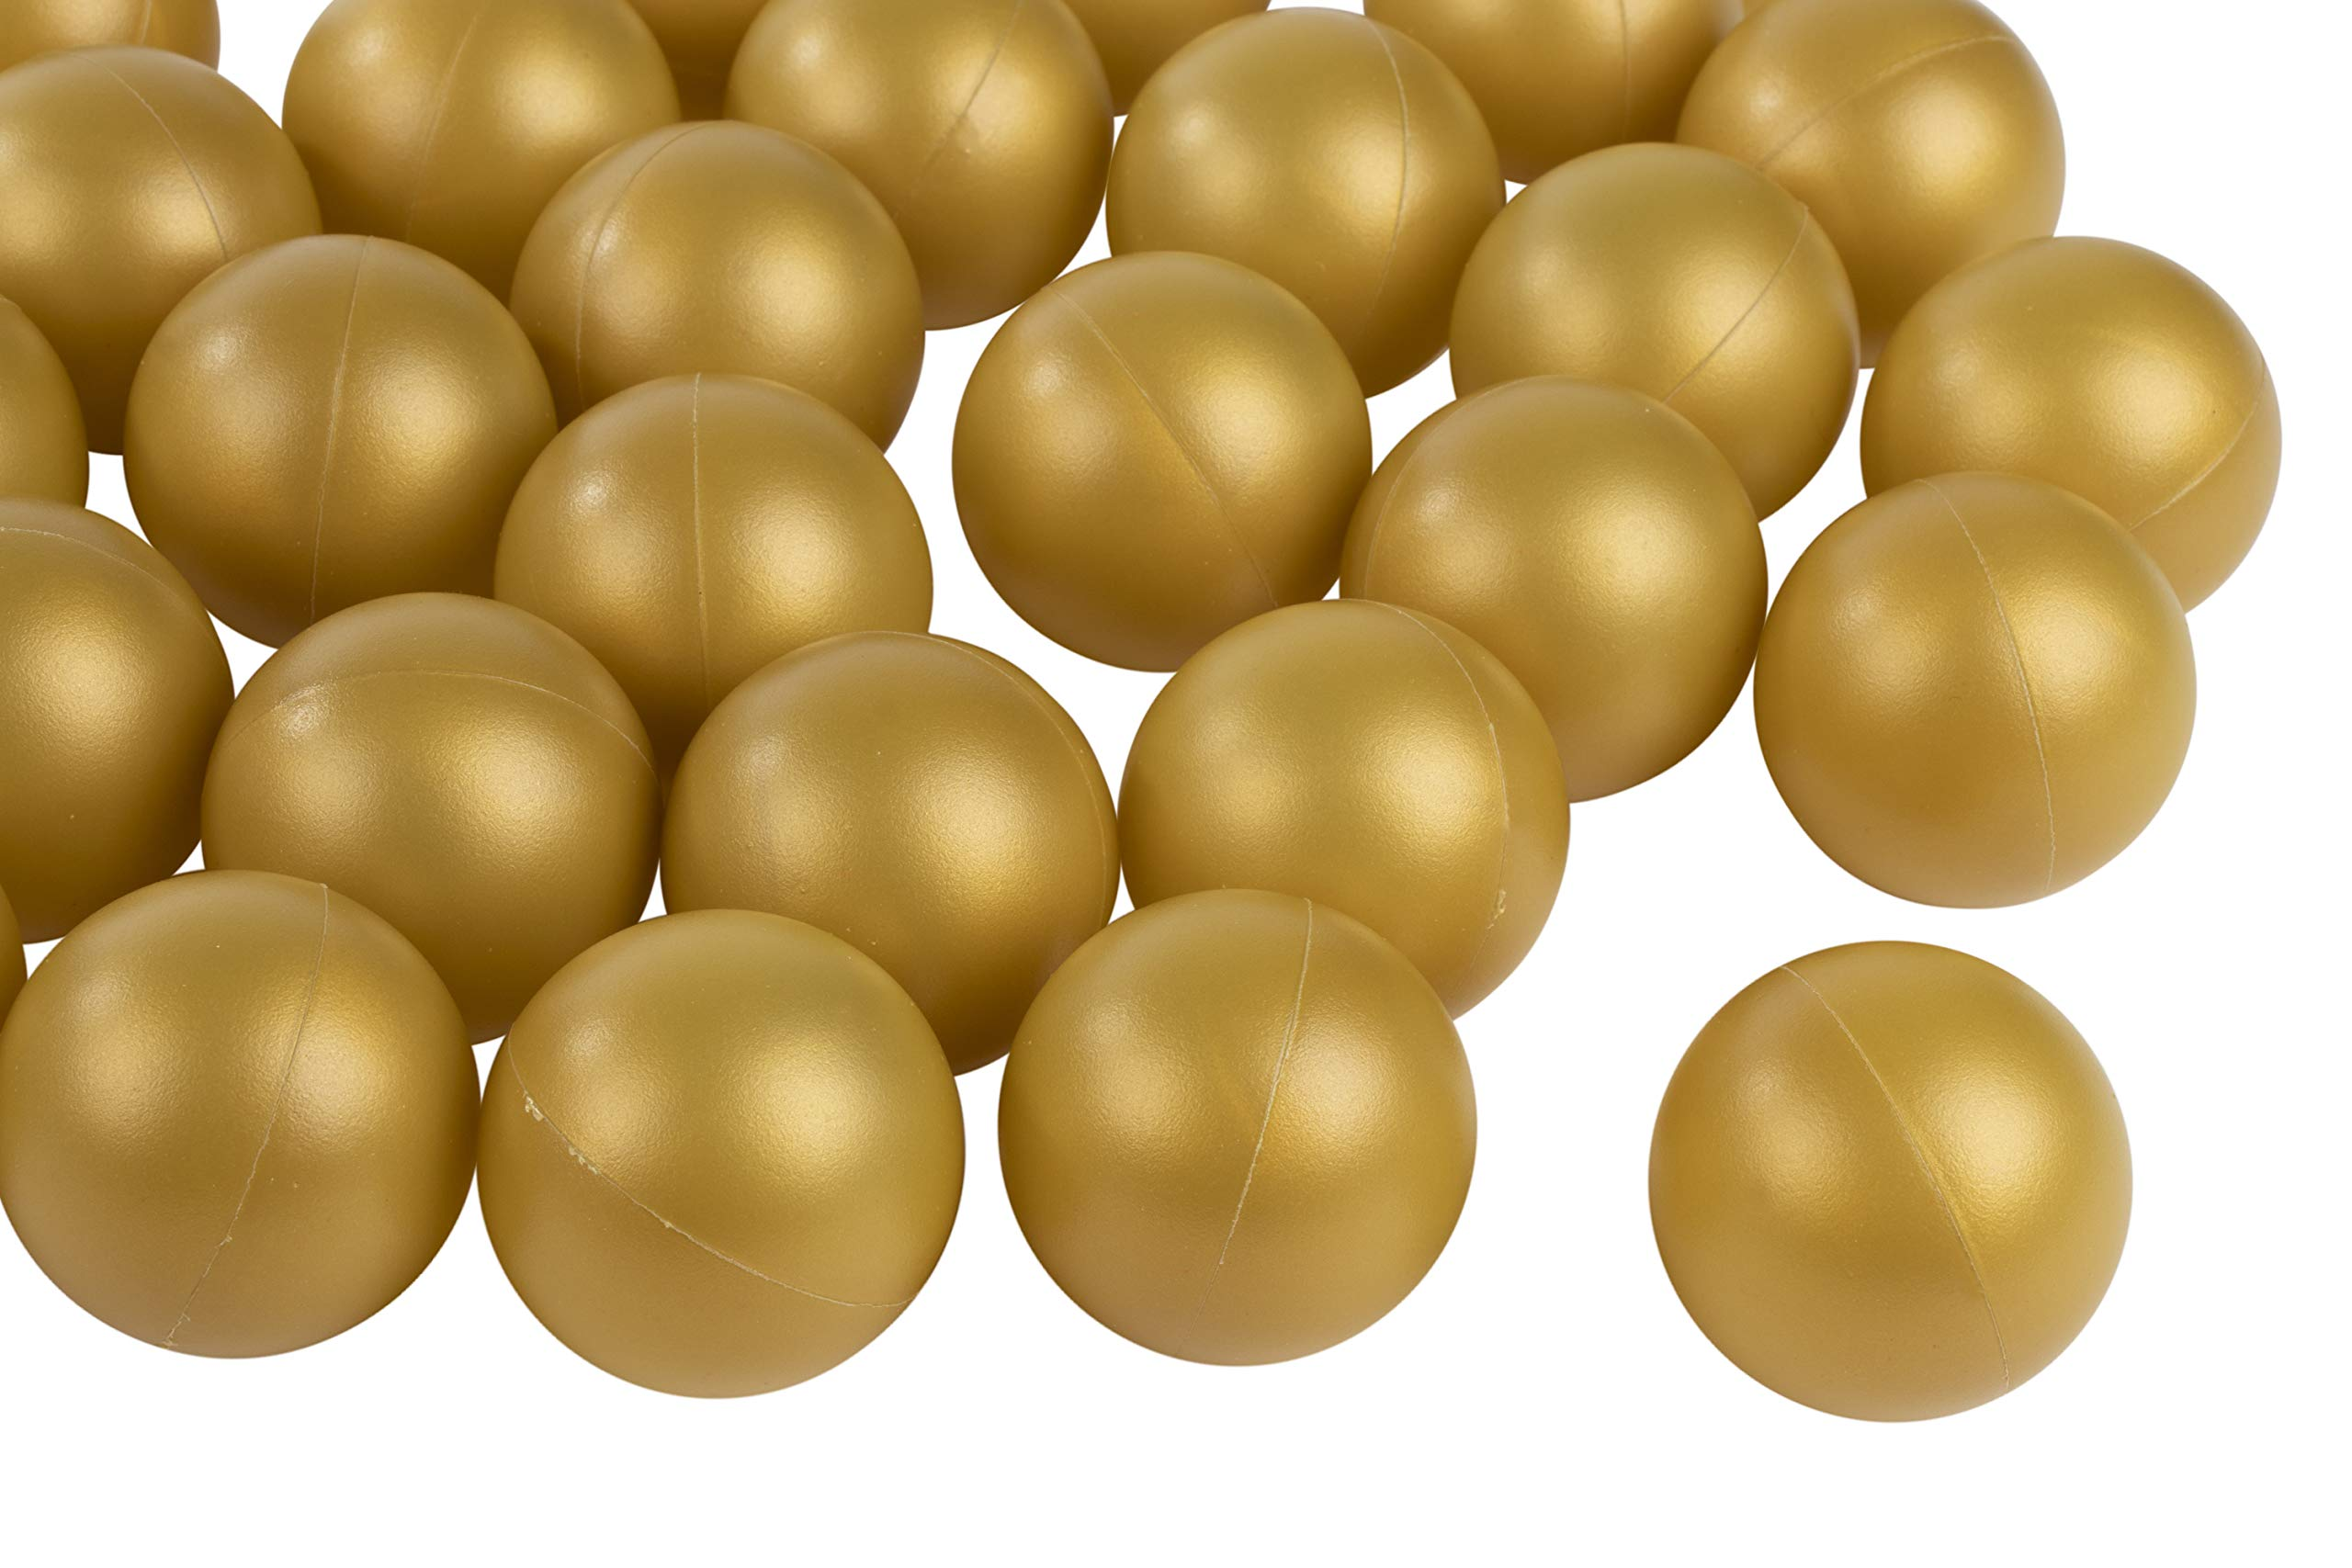 Juvale Beer Pong Balls - 50-Pack Gold Ping Pong Balls, Plastic Golden Table Tennis Ball, Drinking Games Accessories, Perfect for Champagne Pong, 1.5 Inches, Fits 2-Ounce Shot Cup by Juvale